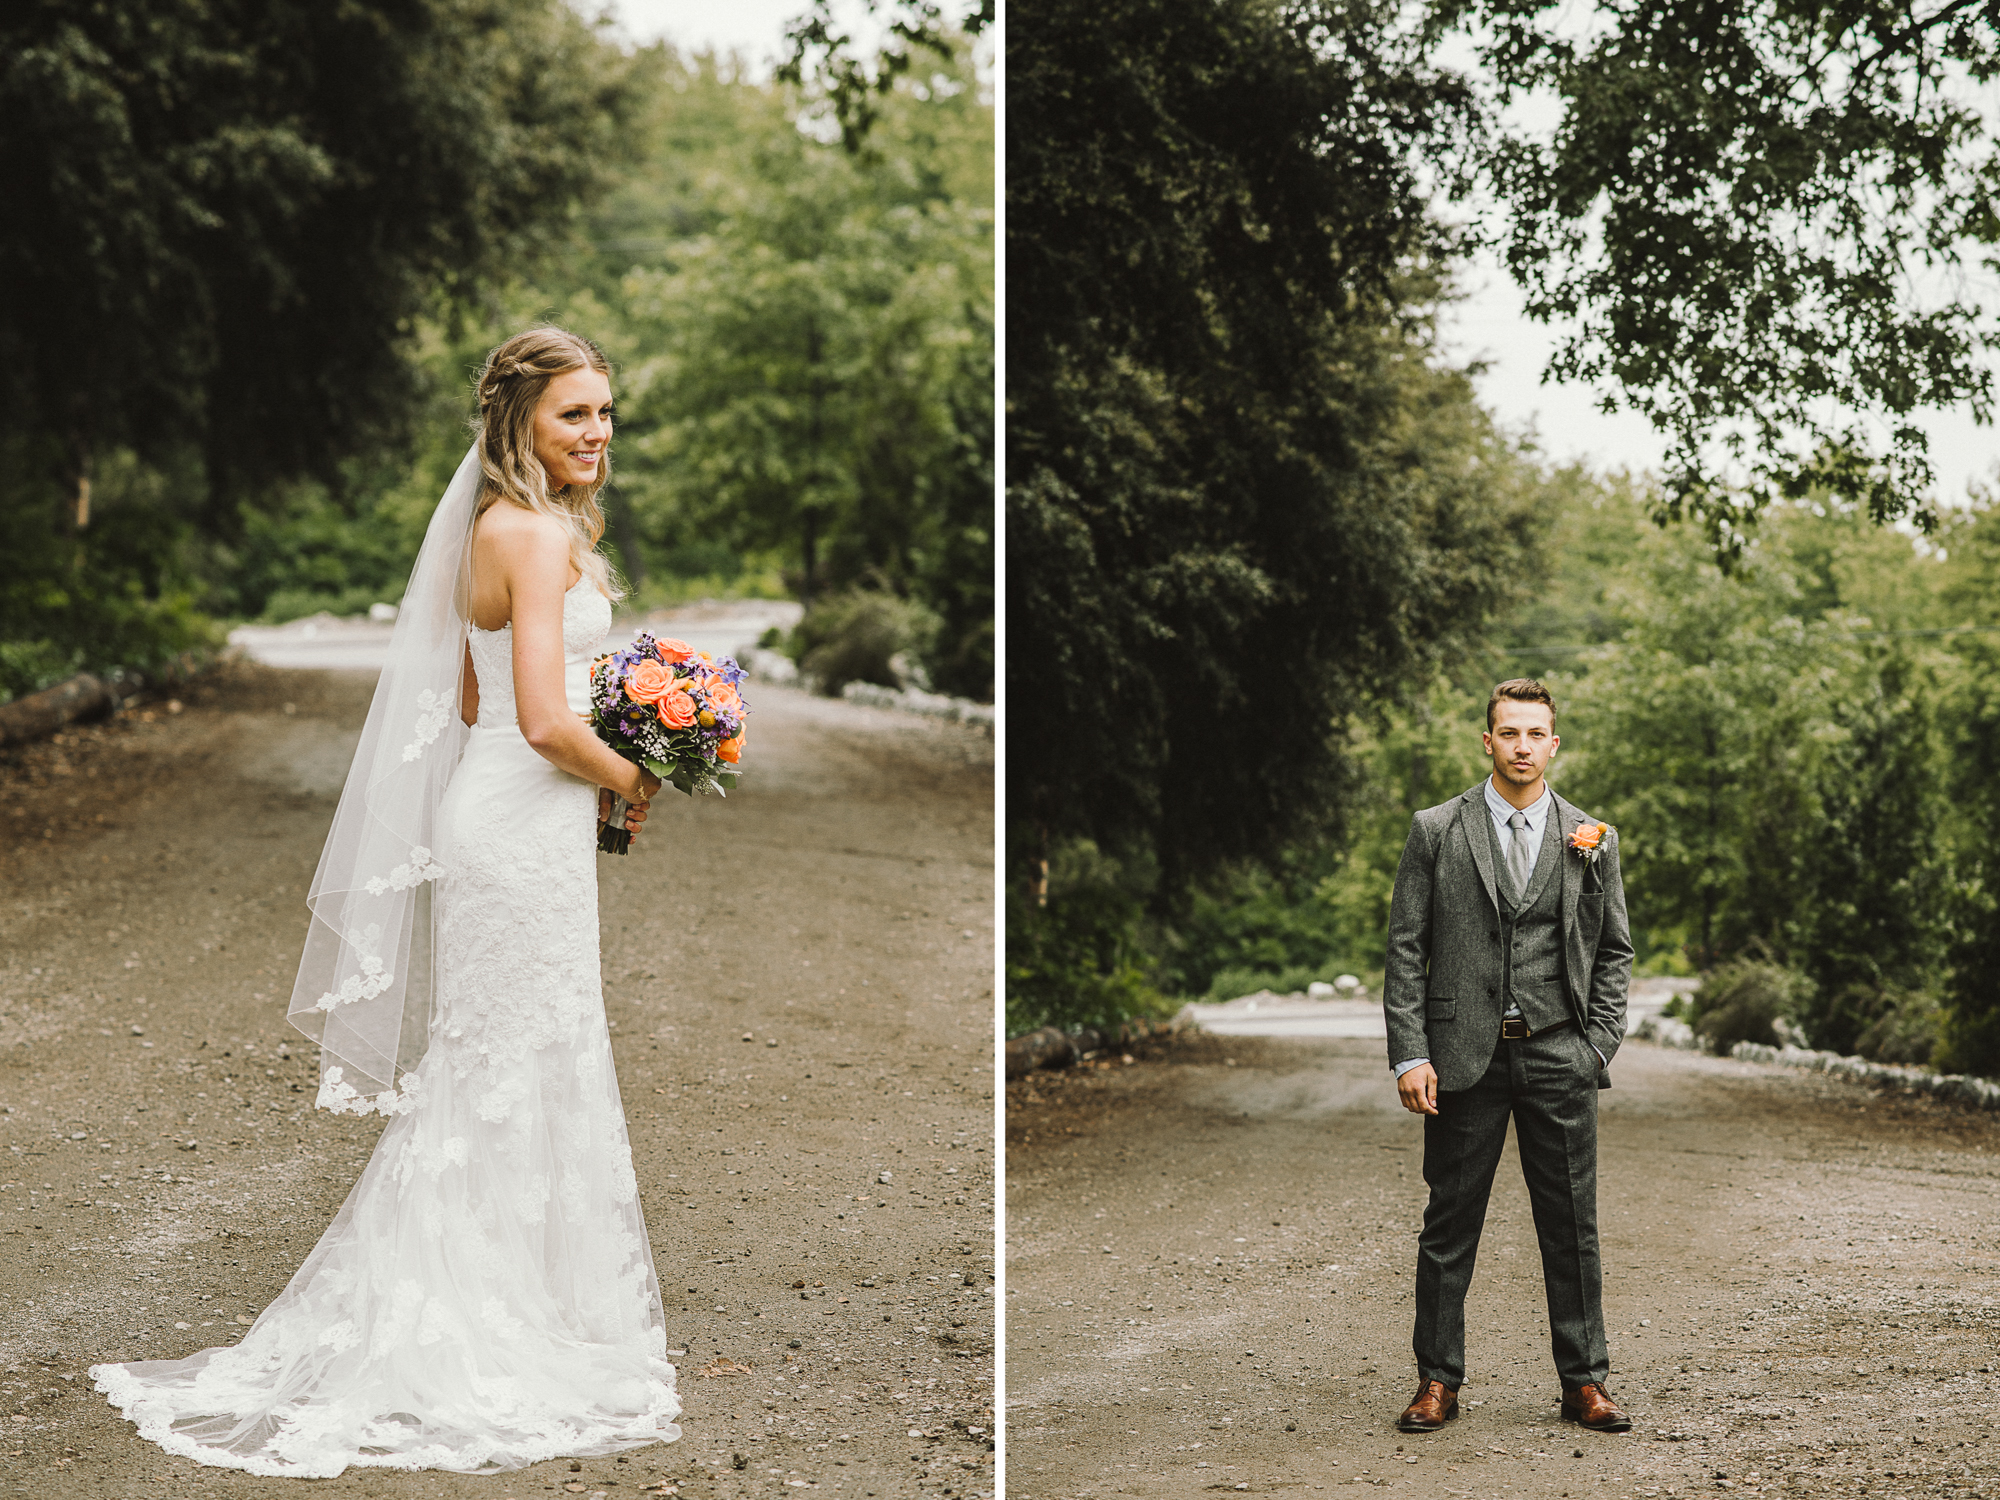 Isaiah & Taylor Photography - Los Angeles - Destination Wedding Photographers - Oak Glen Wilshire Ranch Foggy Forest Wedding-50.jpg